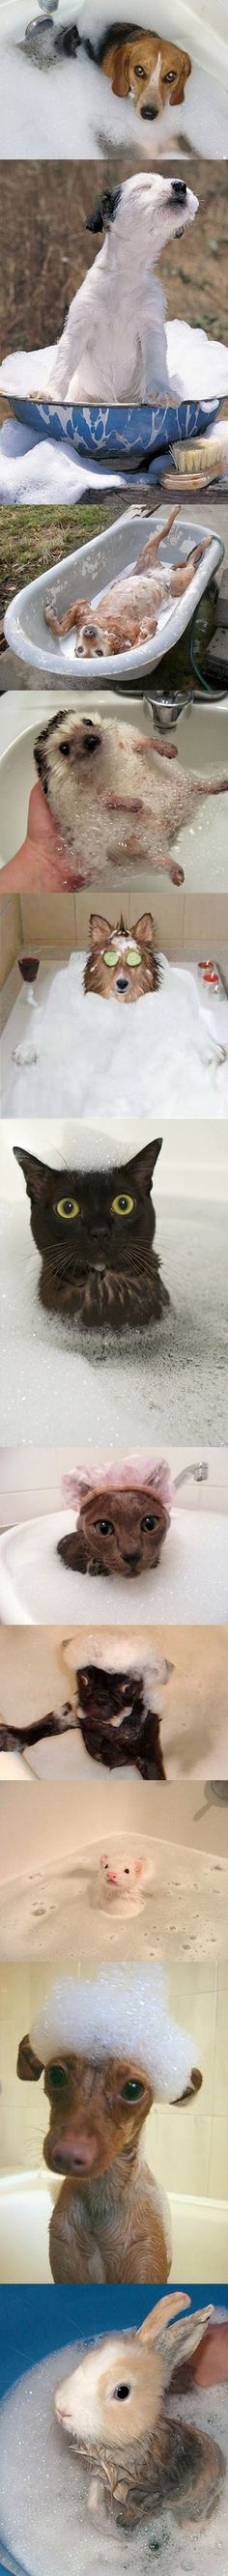 Cute Animals Taking a Bath..i only think the ferret and the hedgehog are cute though.